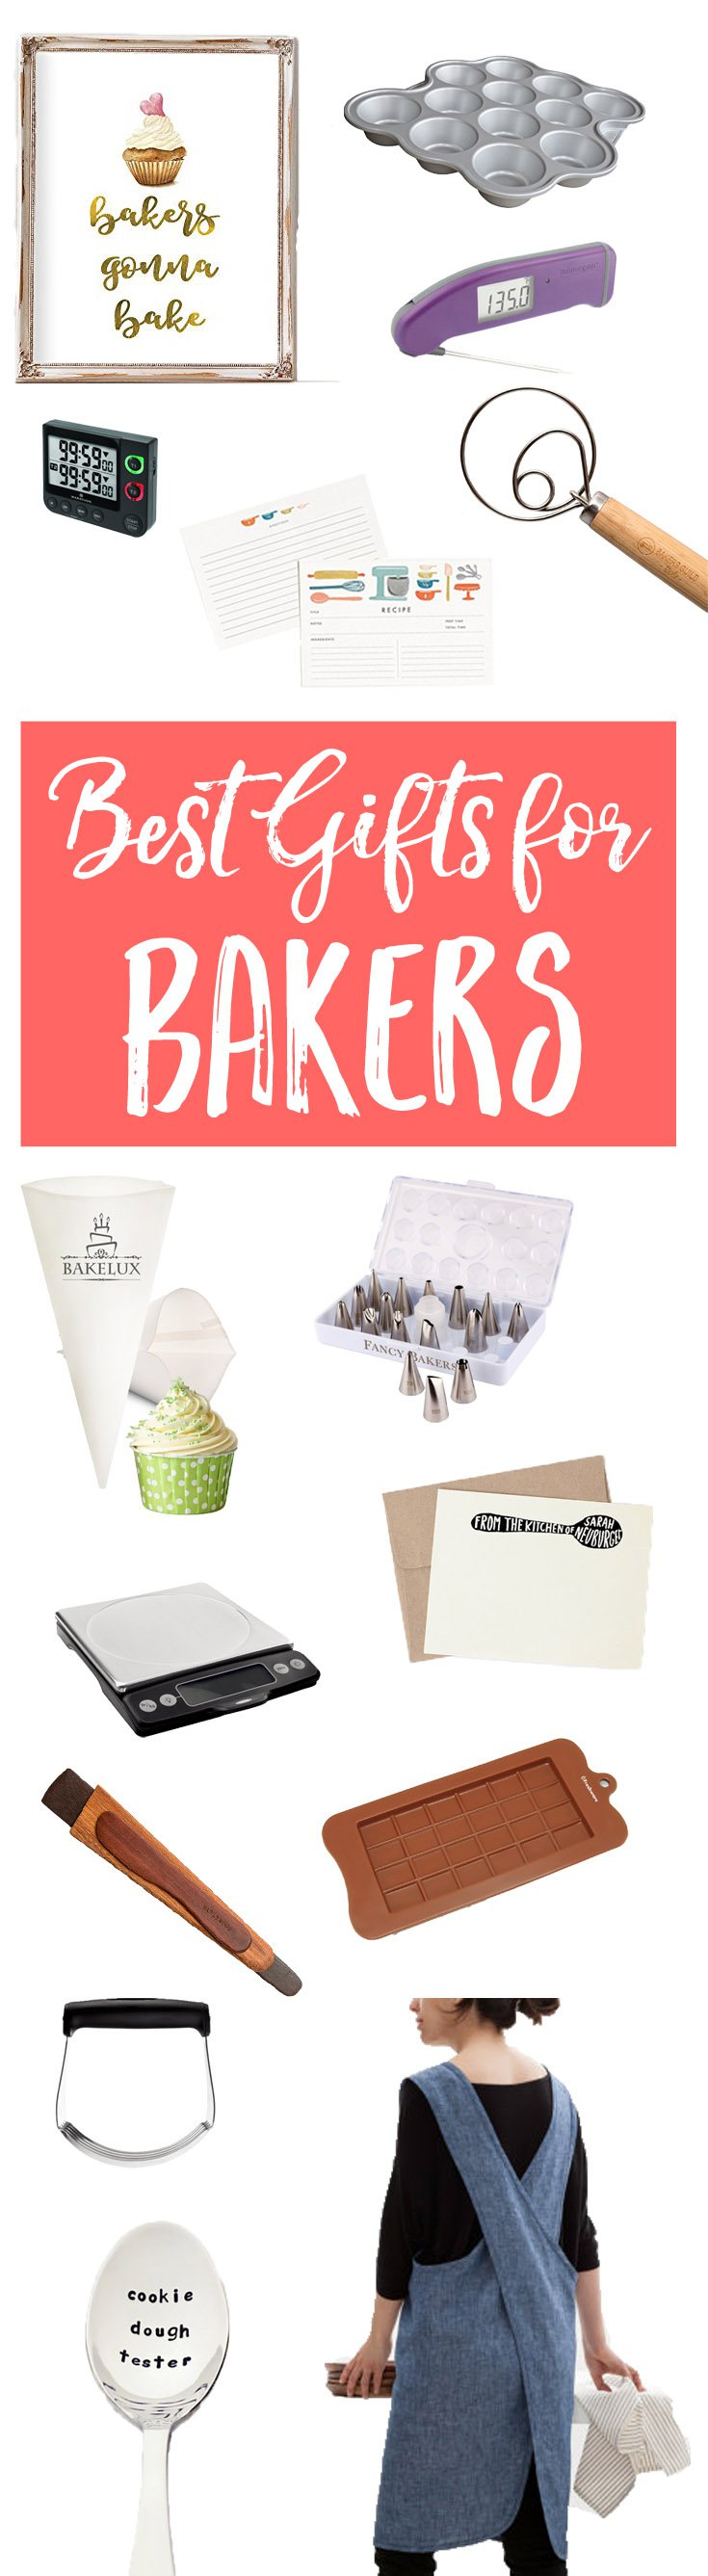 Best Gifts for Bakers: Got a friend or family member with a baking obsession? Here are the best gifts for bakers, who make the world a whole lot sweeter.